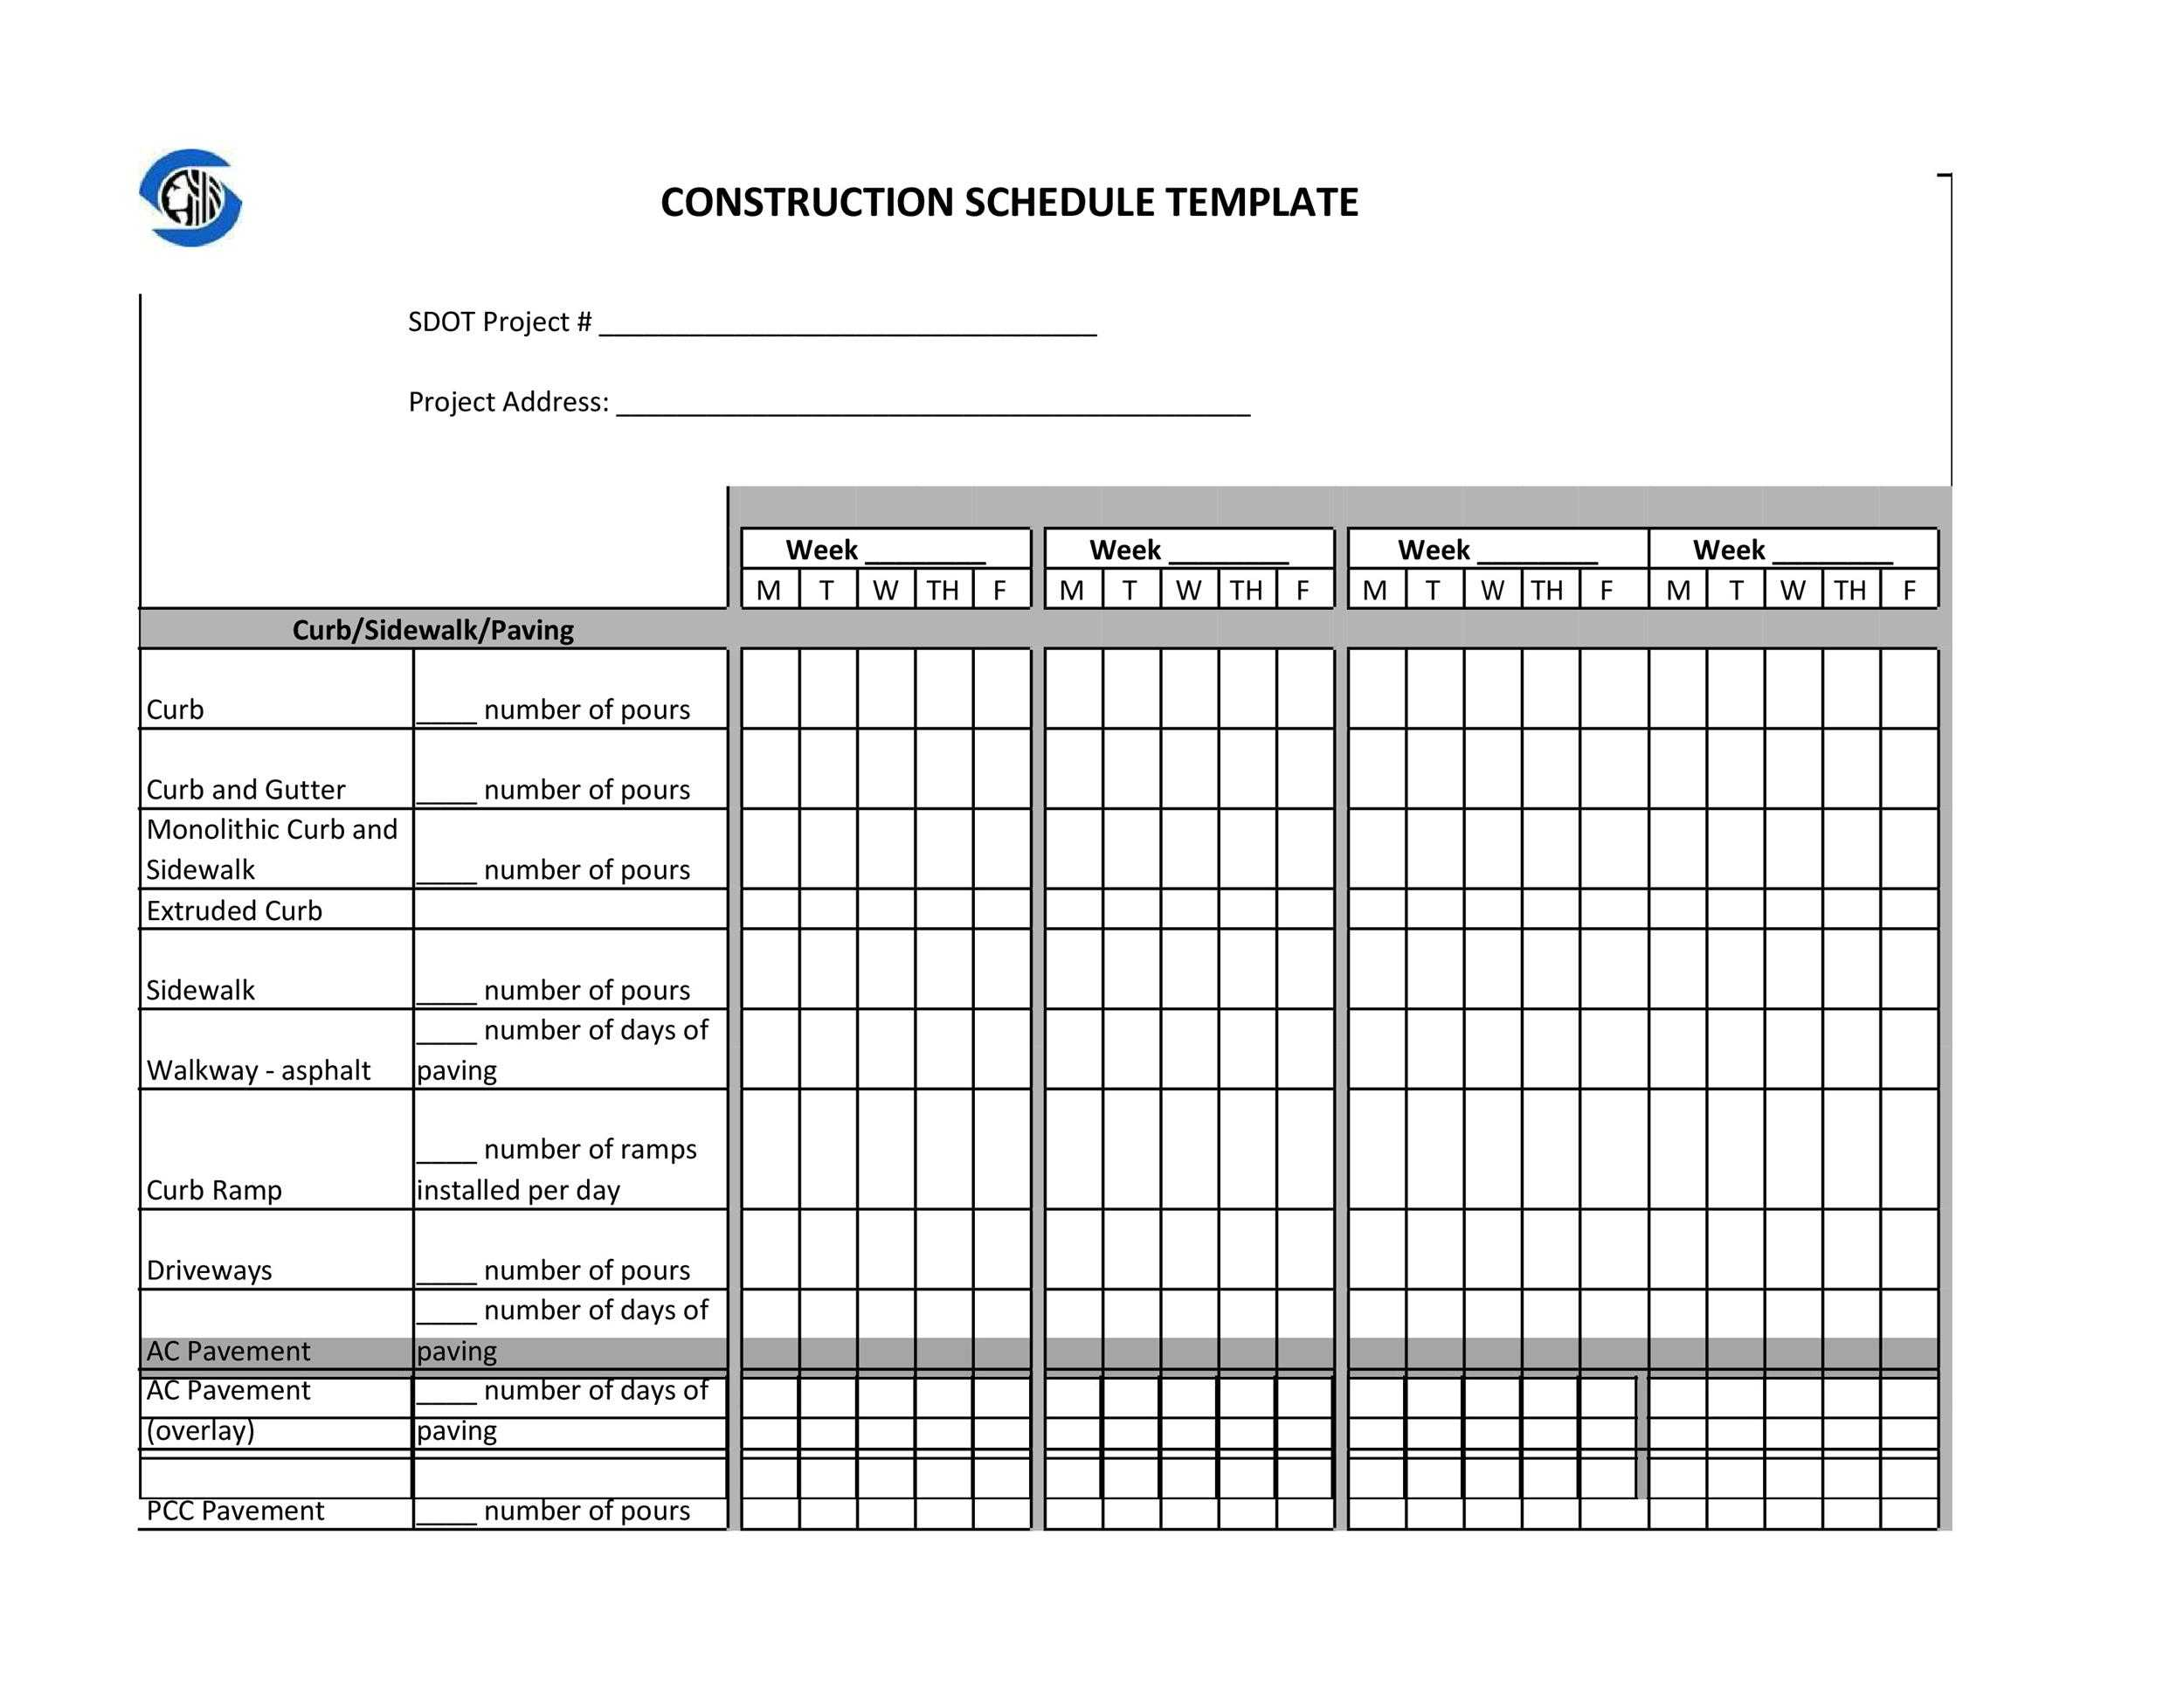 Importance Of Having A Construction Schedule, printable construction schedule template, construction schedule template, commercial construction schedule template, free construction schedule template, residential construction schedule template excel, commercial construction schedule template excel, construction schedule template excel, construction project schedule template excel, residential construction schedule template, construction schedule using excel template free download, construction draw schedule template excel, excel construction schedule template, construction project schedule template, construction payment schedule template, construction schedule of values template, construction schedule excel template free, critical path construction schedule template, microsoft project construction schedule template, construction draw schedule template, ms project construction schedule template, construction submittal schedule template, schedule of values construction template, residential construction schedule template excel free, free excel construction schedule template, construction finish schedule template, excel construction schedule template free download, construction wip schedule template, restaurant construction schedule template, two week look ahead construction schedule template, construction project schedule template excel free, construction work schedule template, template for construction schedule, free construction schedule template excel, construction schedule using excel template, construction project schedule template free, construction job schedule template, sample construction schedule template, building construction schedule template, weekly construction schedule template, new home construction schedule template, schedule of values template construction, excel template for construction schedule, work schedule template for construction, home construction schedule template excel, excel construction schedule template free, house construction schedul